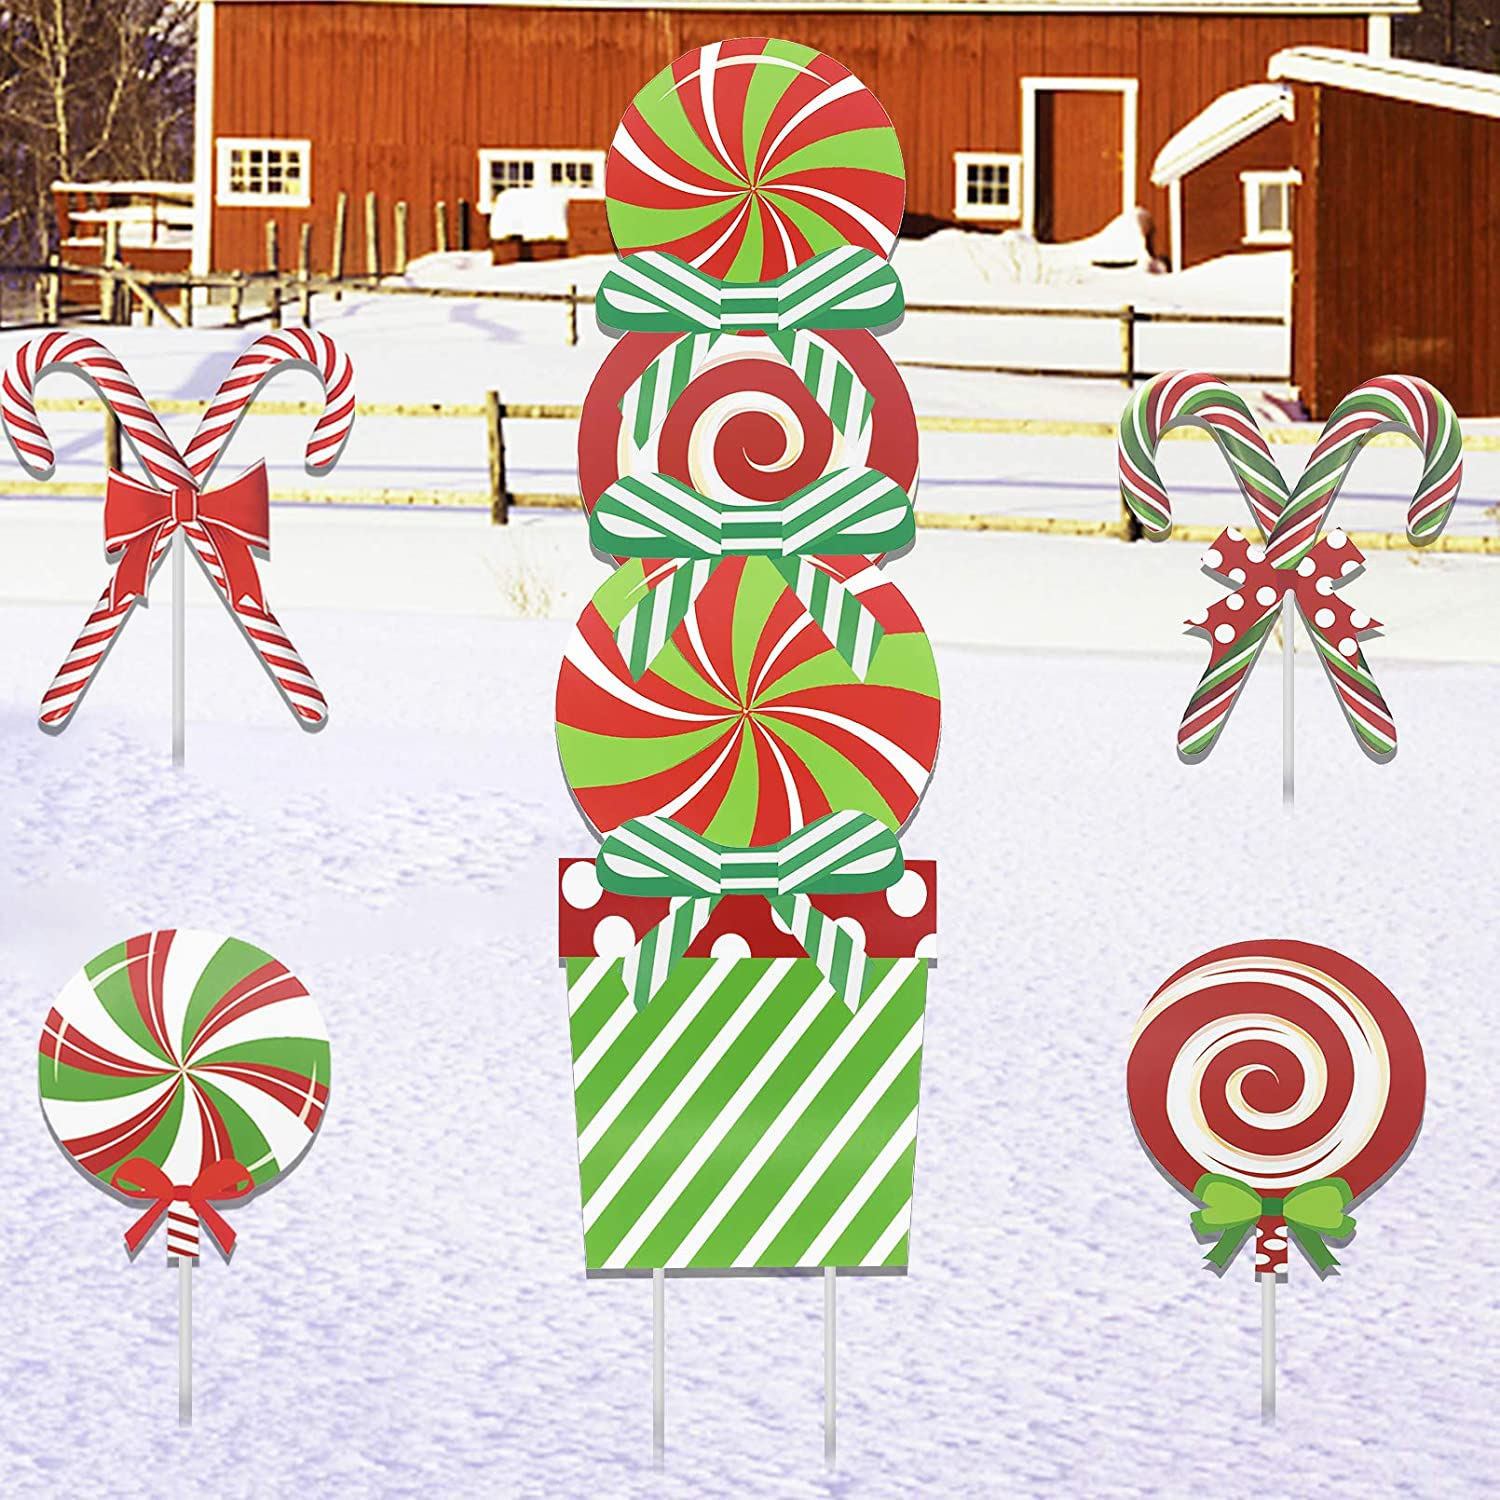 Deloky 11 PCS Christmas Giant Candy Yard Signs-Peppermint Xmas Splicing Lawn Decorations-Holiday Decor Yard Sign with Stakes for Home Lawn Pathway Walkway Candy Themed Party